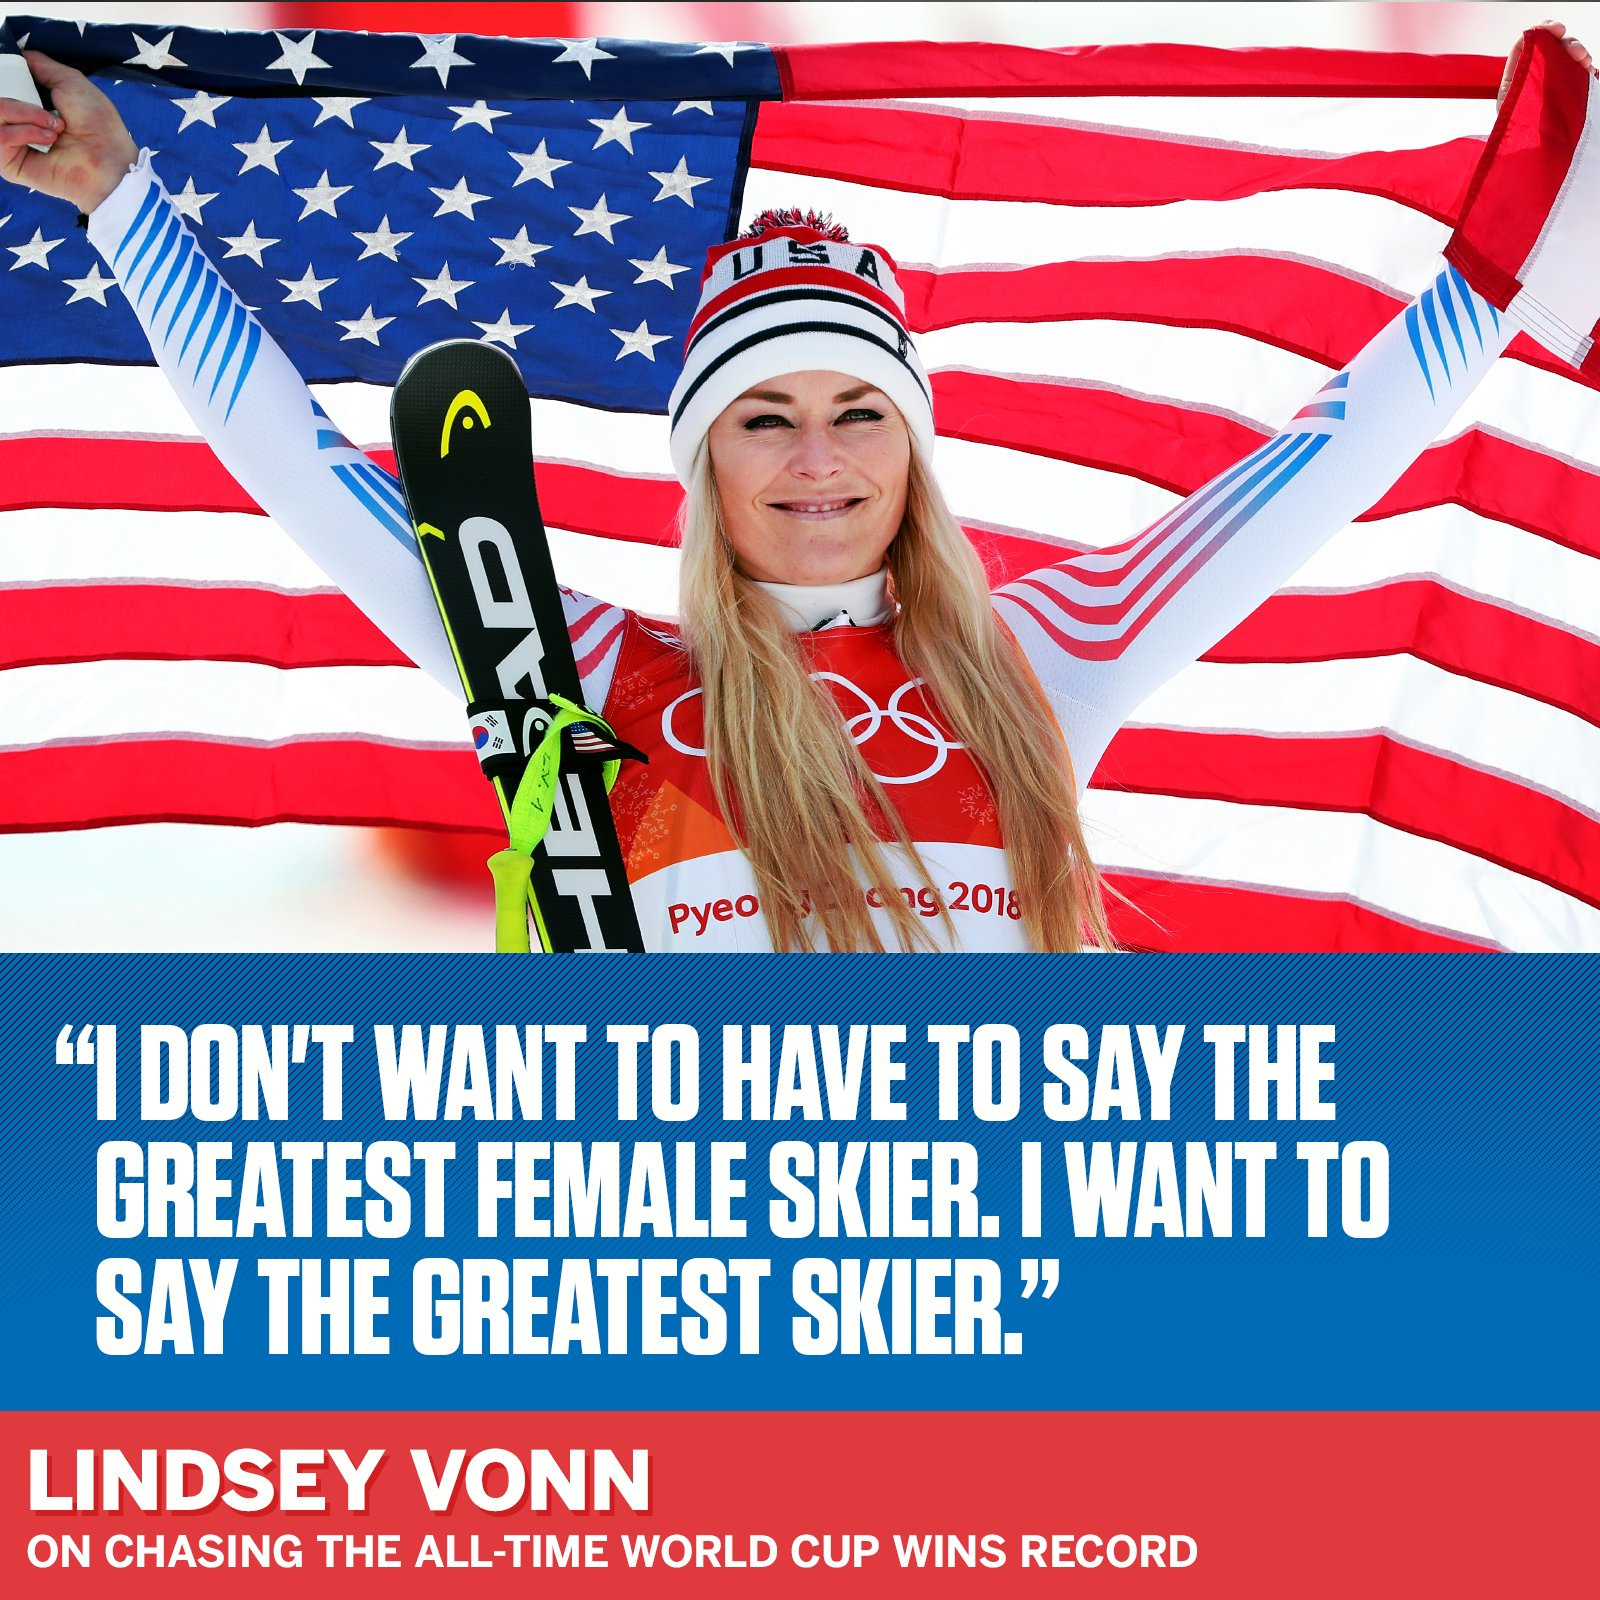 Even if 2018 was @lindseyvonn's last Olympics, she still wants to add to her legacy. https://t.co/iFv6mgABdp